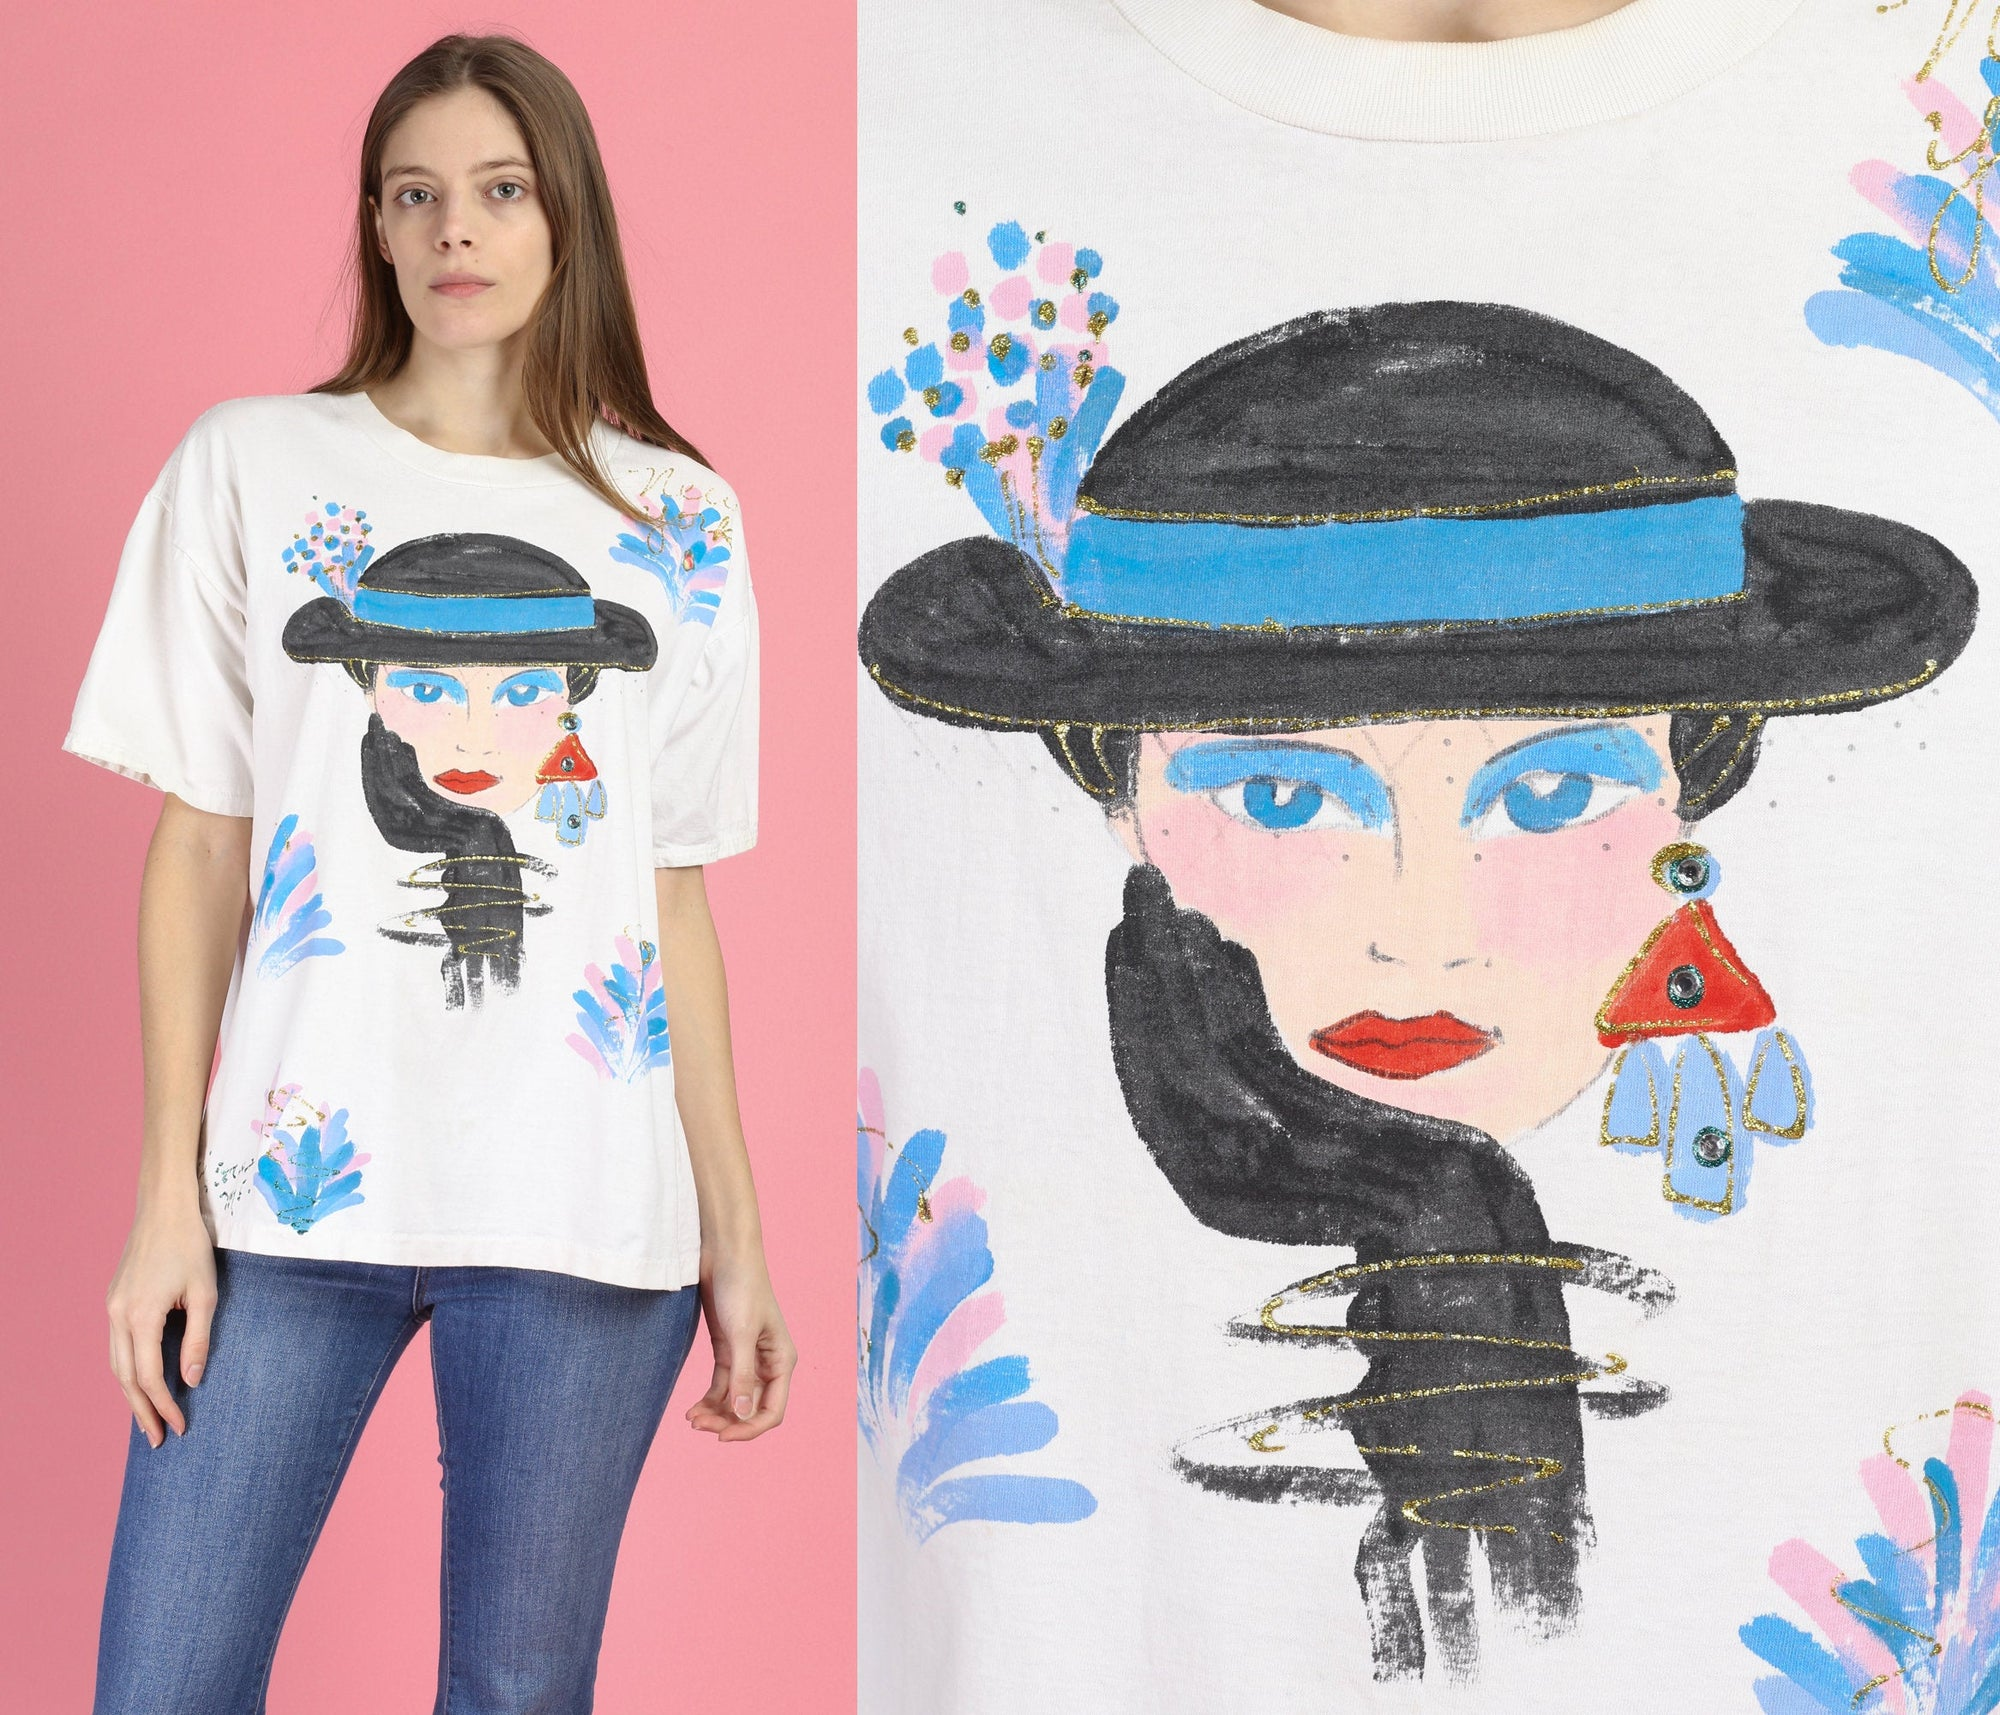 Vintage 1920s Dame Puff Paint T Shirt - Extra Large